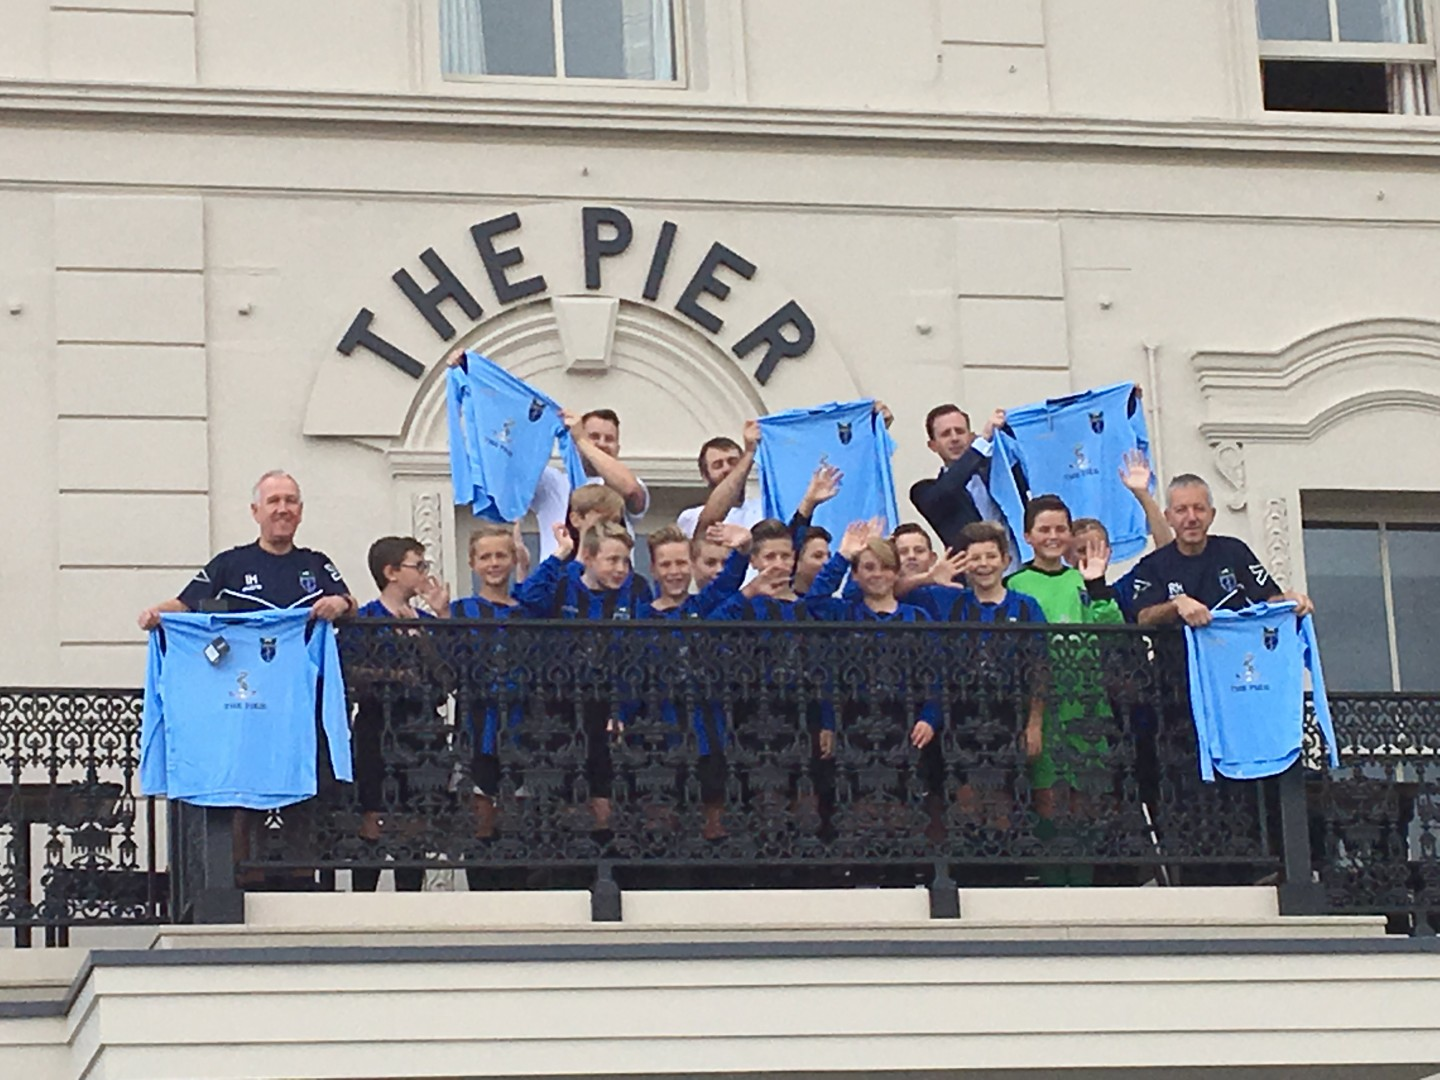 The Pier at Harwich sponsors Little Oakley Football Club Under 13 team